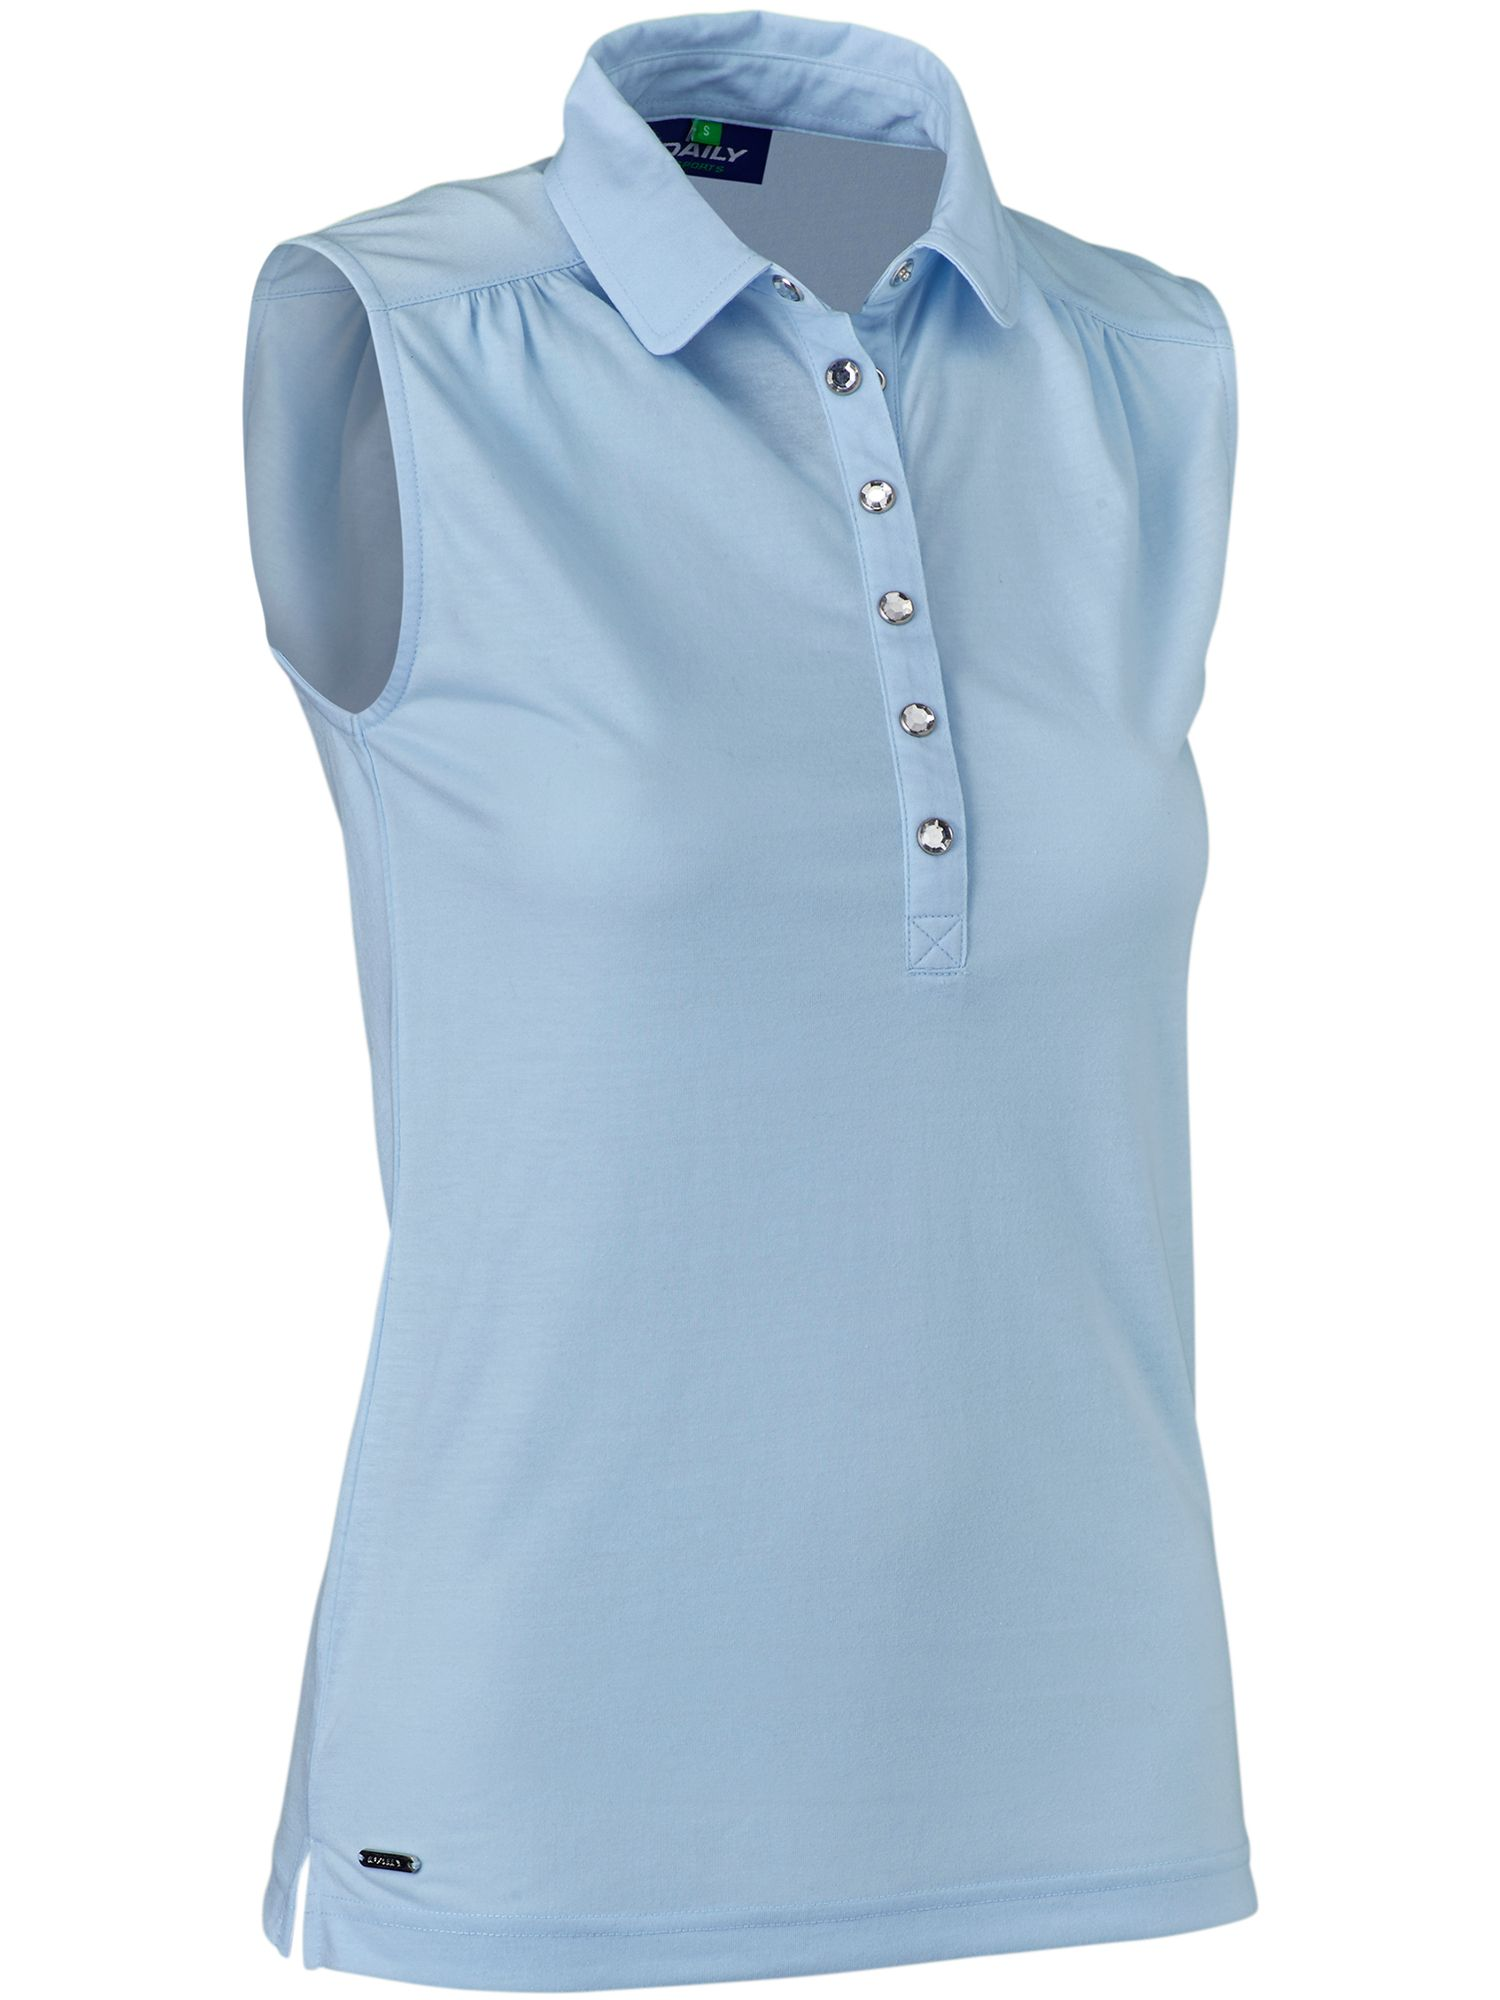 Daily Sports Majken Sleeve Less Polo, Light Blue